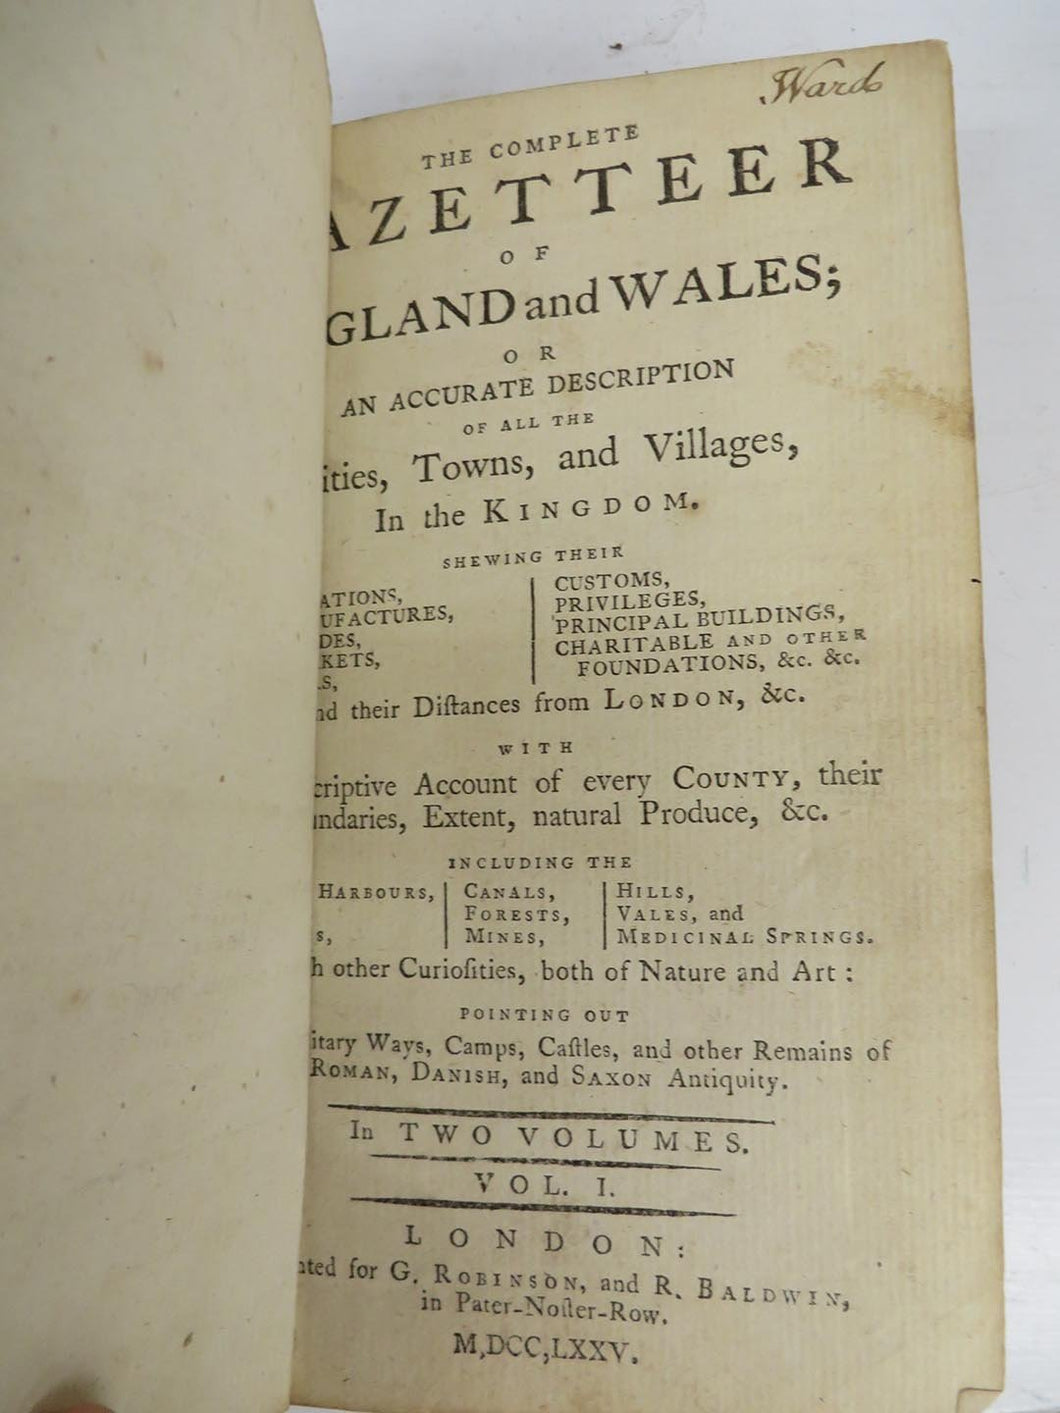 The Complete Gazetteer of England and Wales; or An Accurate Description of all the Cities, Towns, and Villages, In the Kingdom.